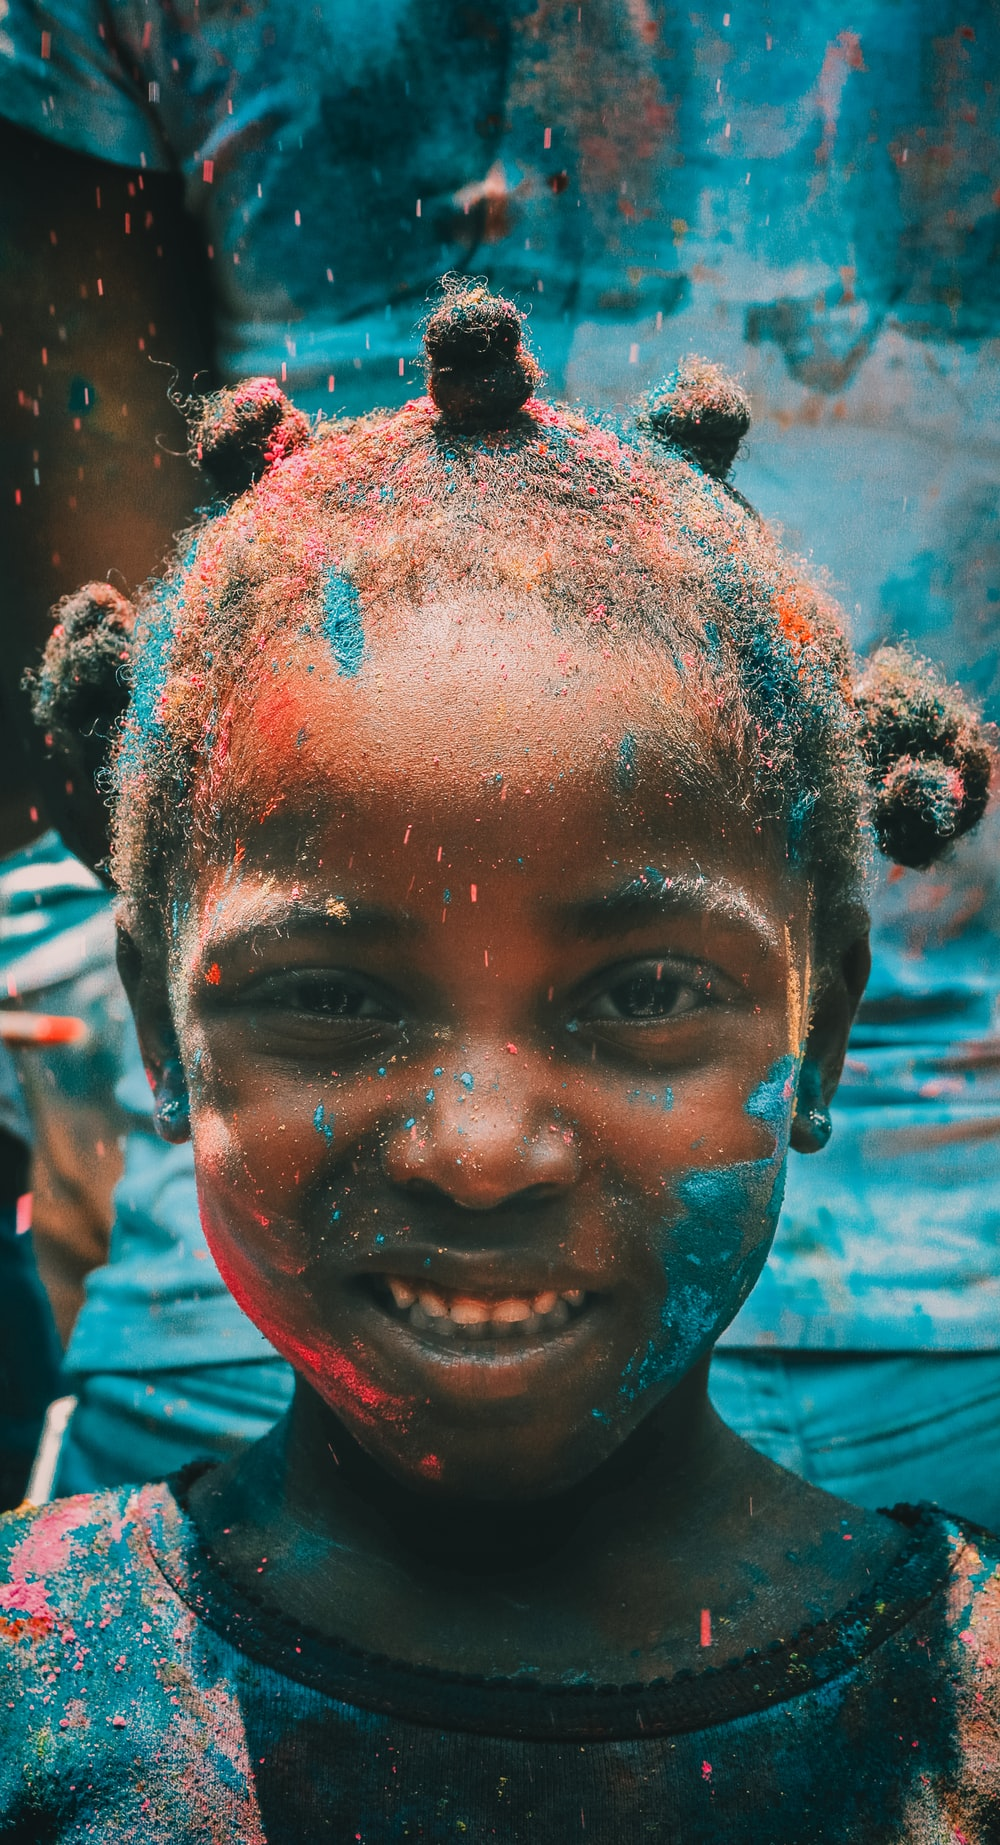 girl covered with holi powder during daytime